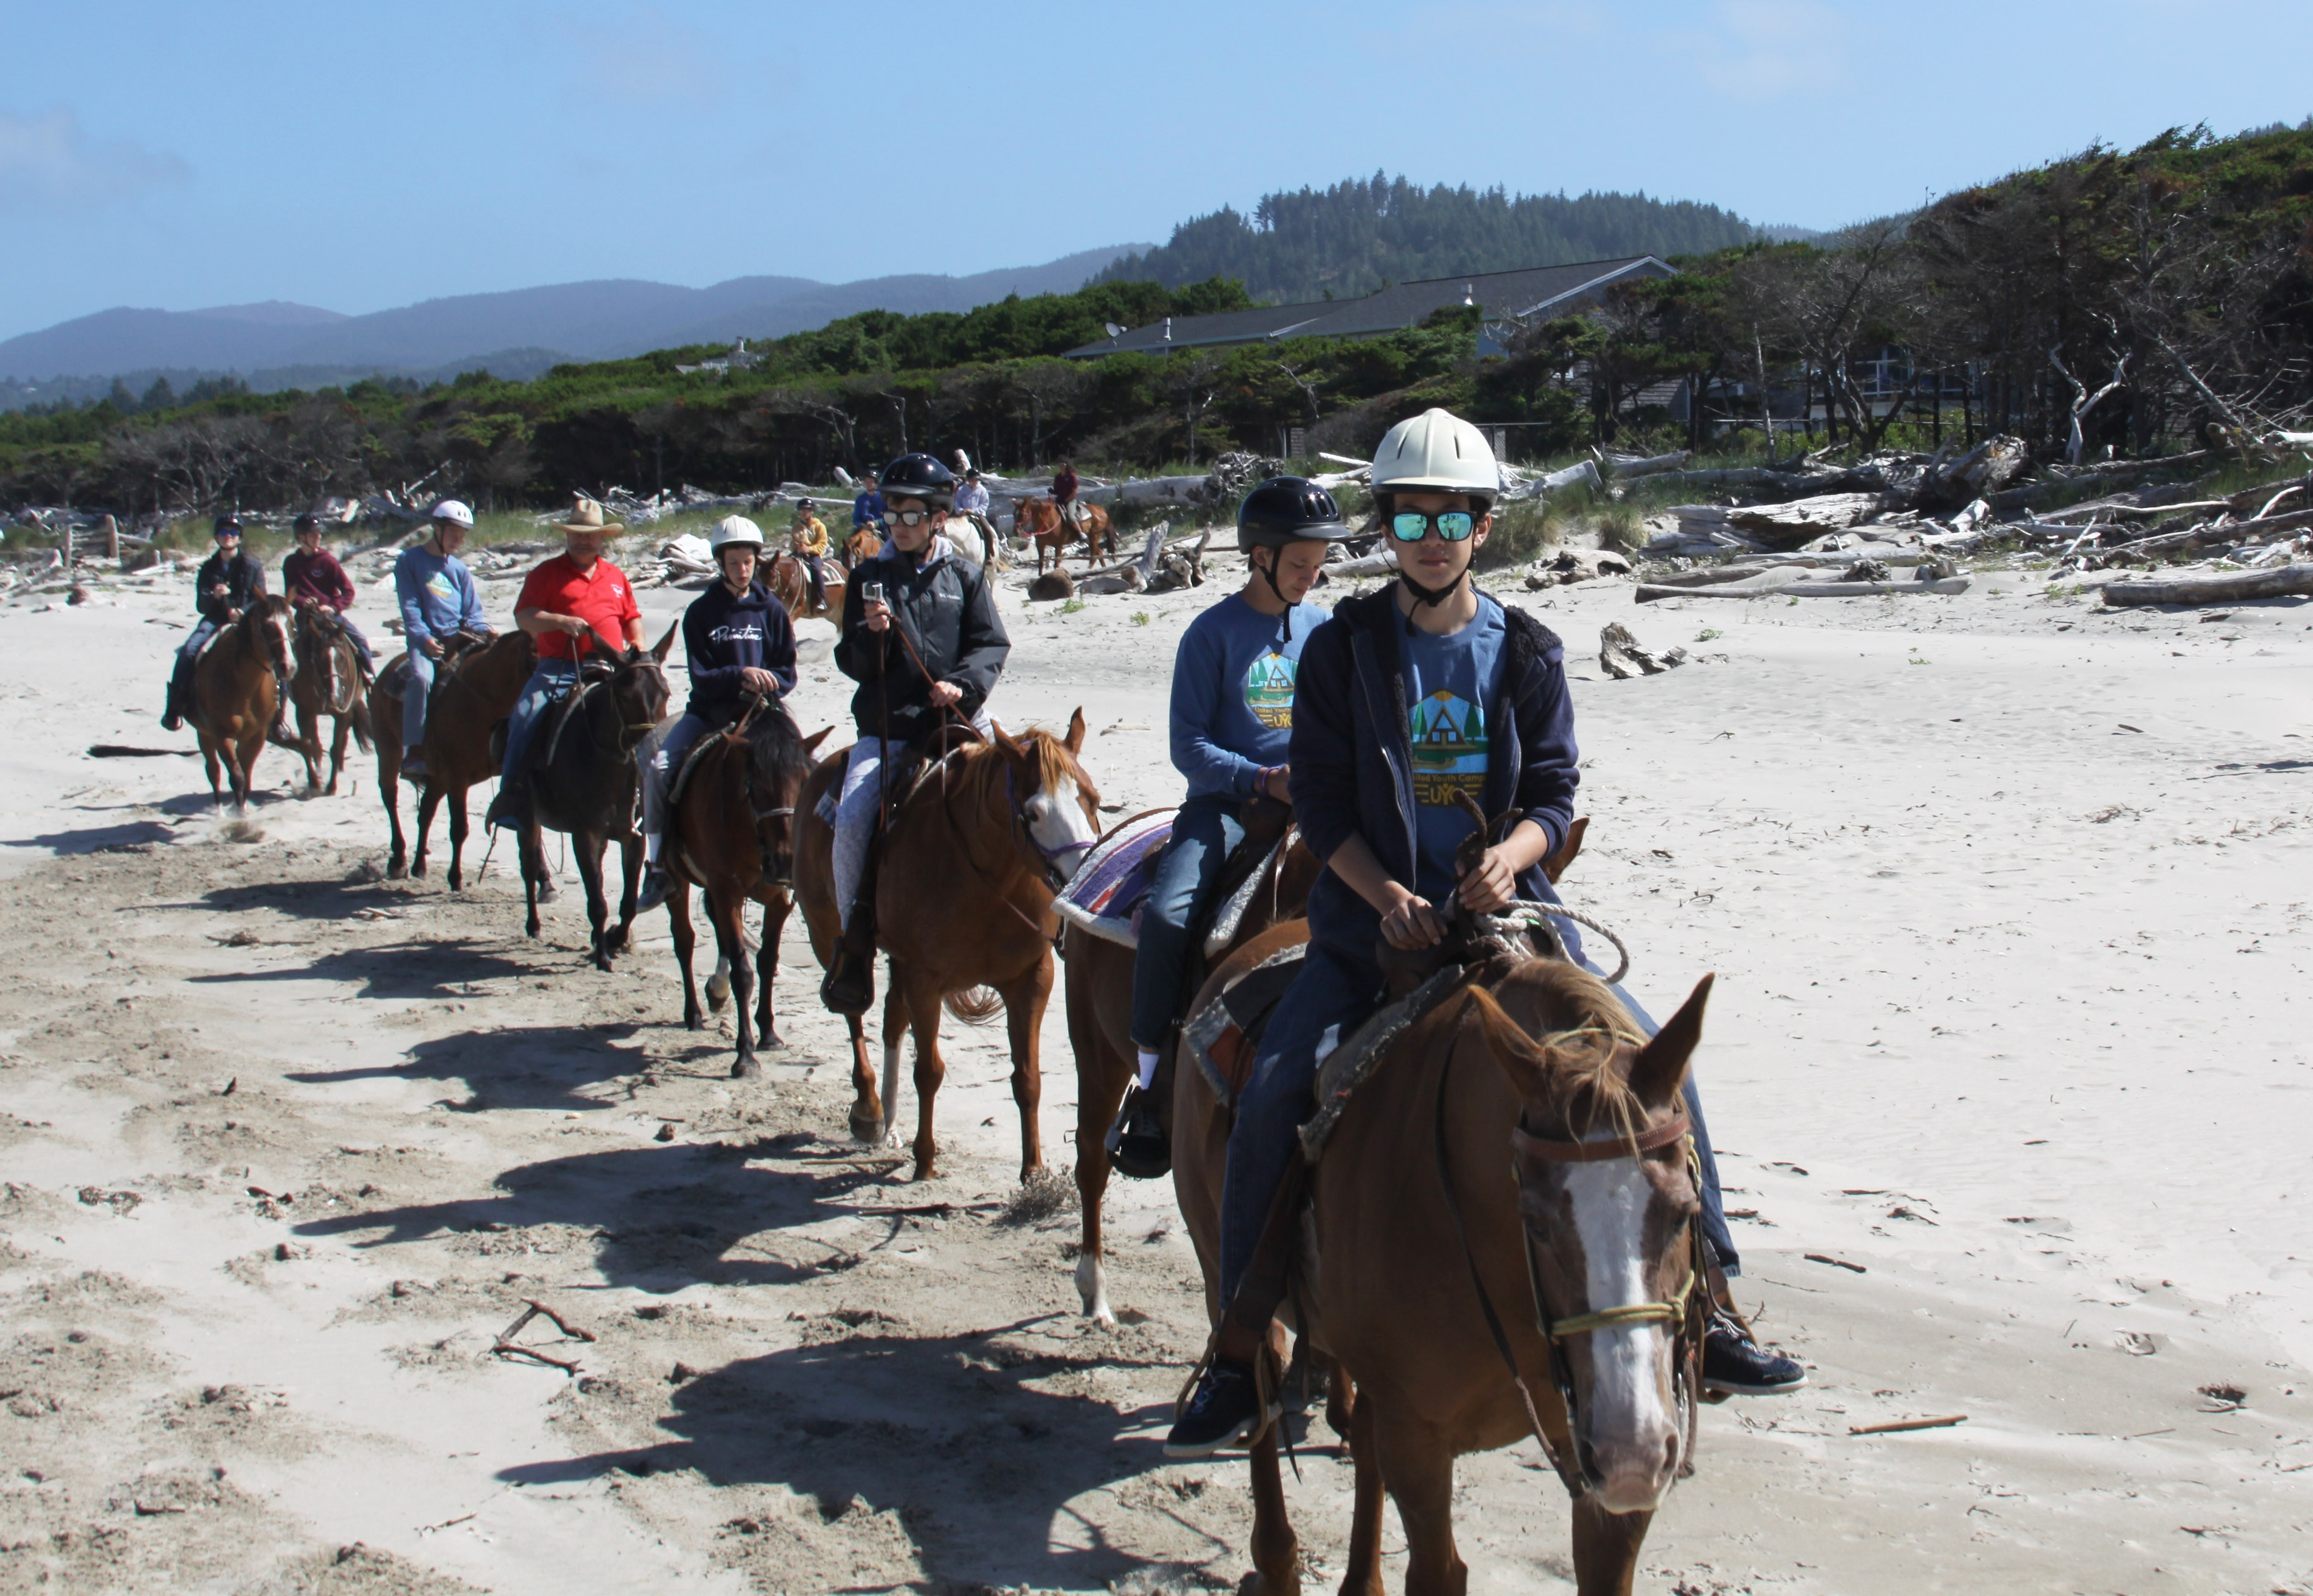 Campers riding horses on the beach at Northwest teen Camp.